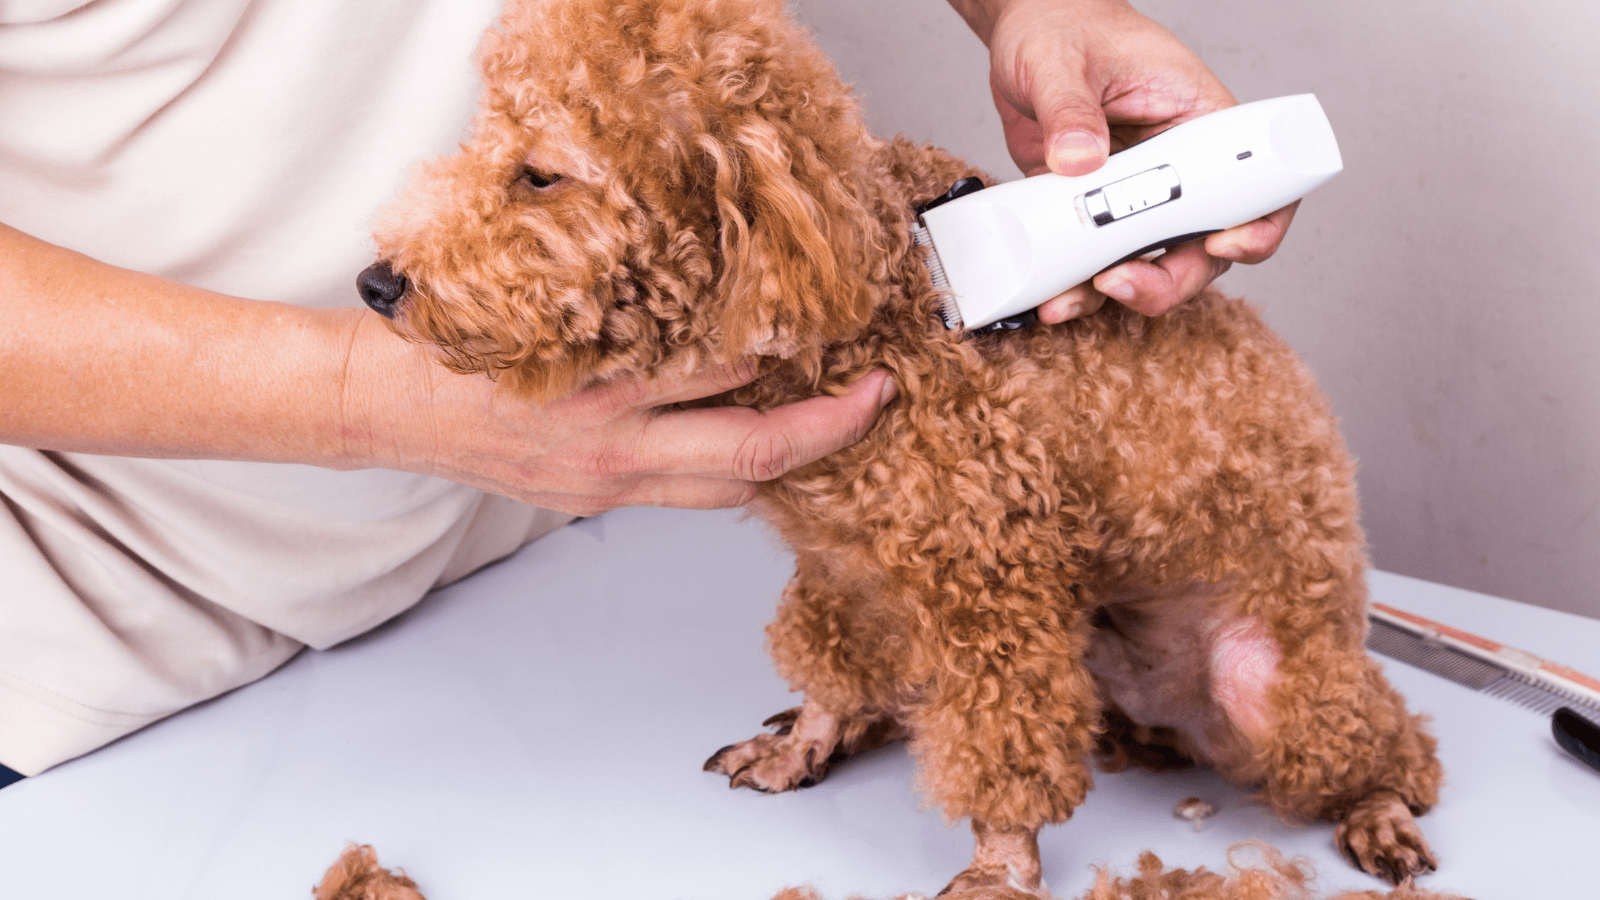 How to Groom A Dog At Home With Clippers